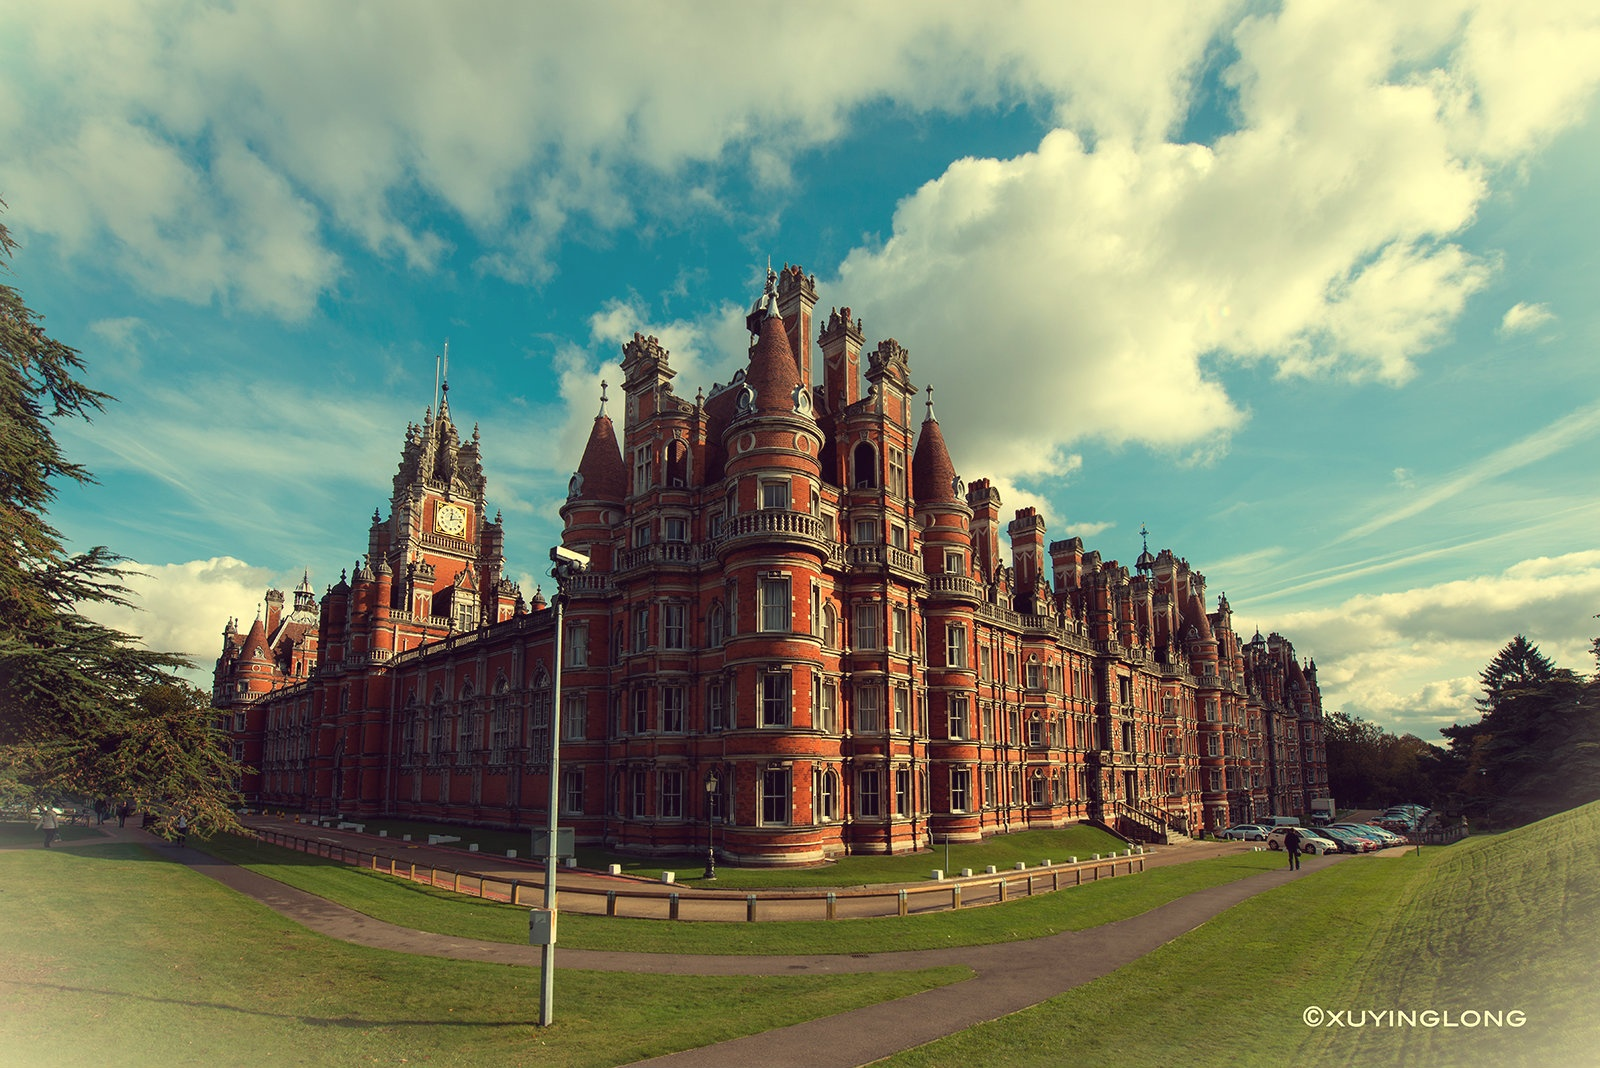 Royal Holloway University Drama Scene